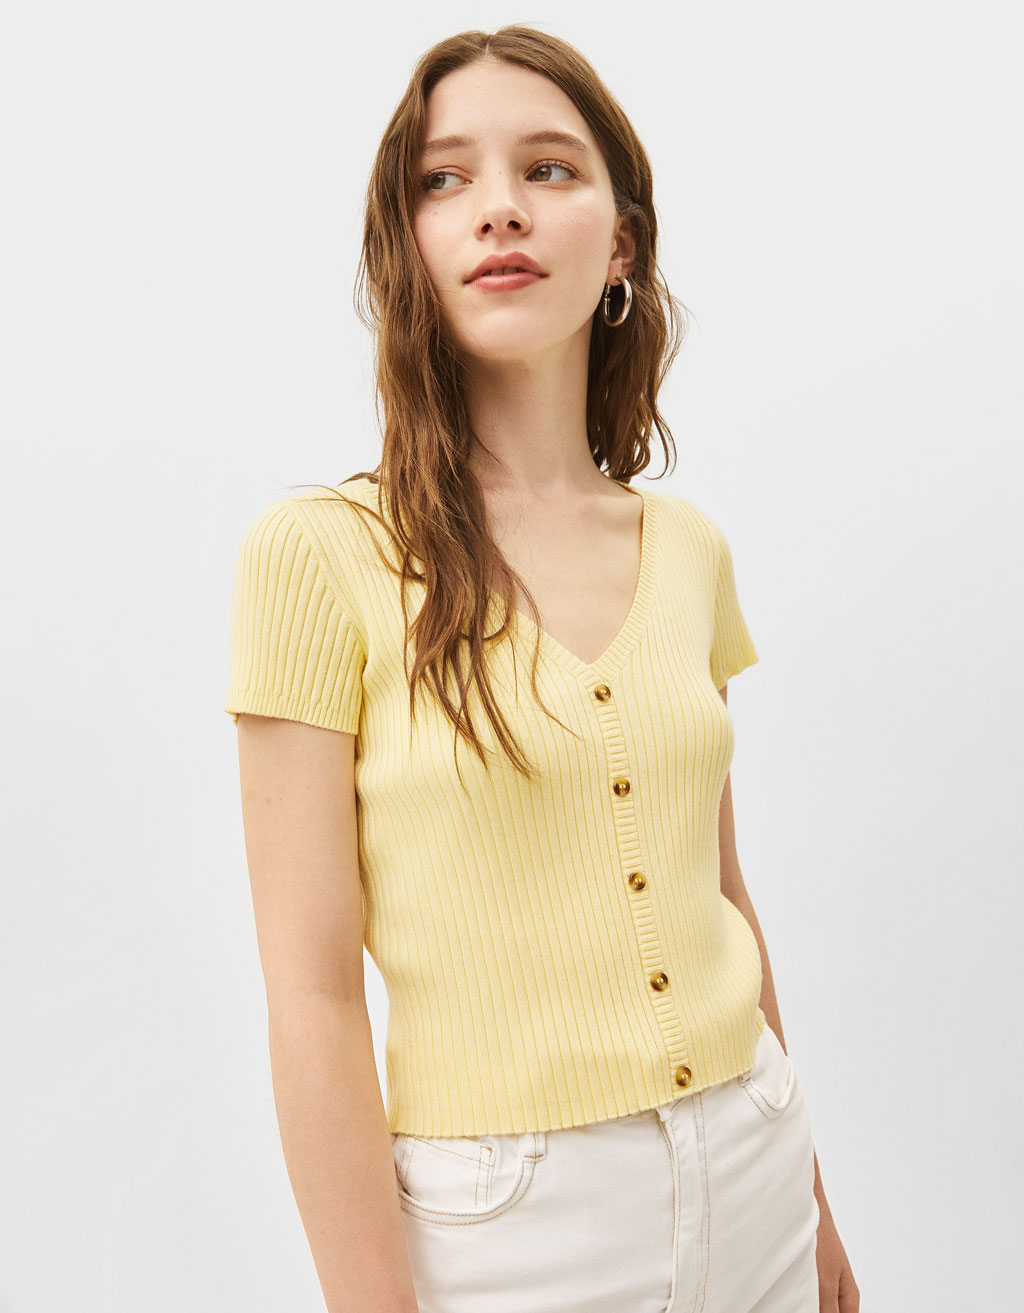 0feb7fc2dab637 Women's Knitwear - Summer Sale 2019 | Bershka